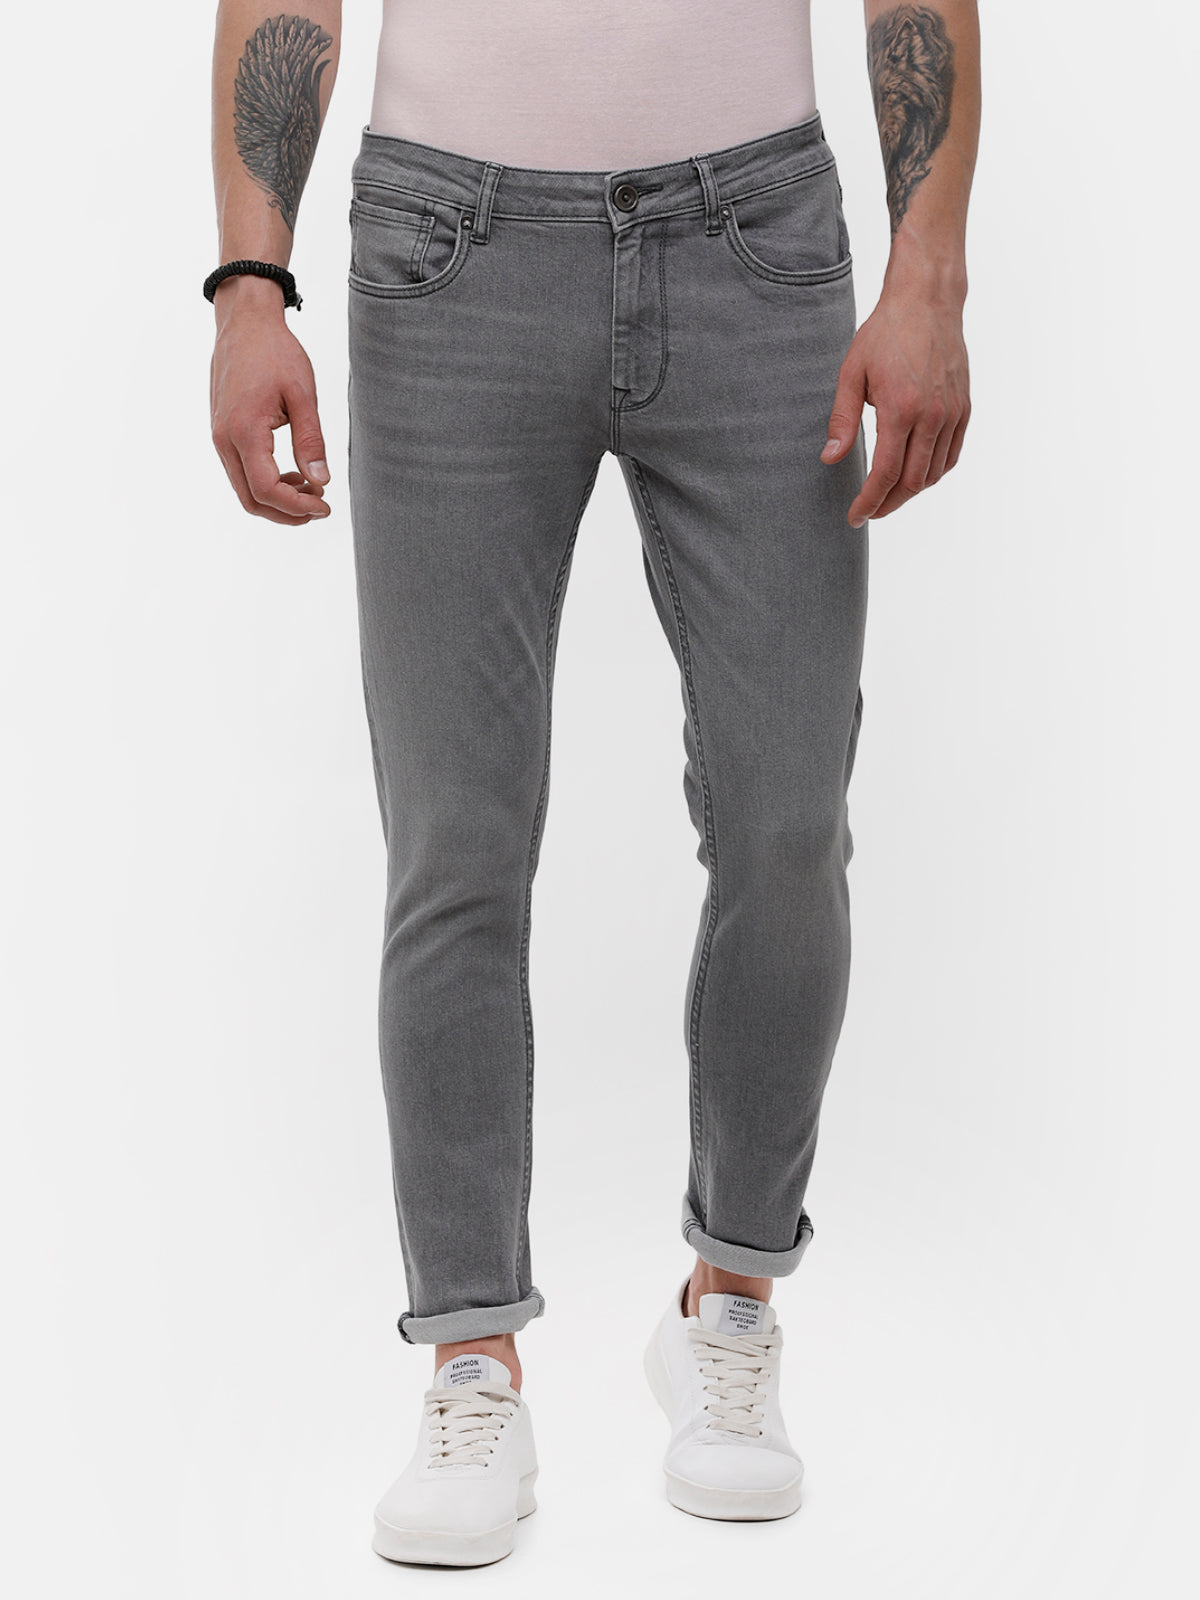 Men's gray faded denim